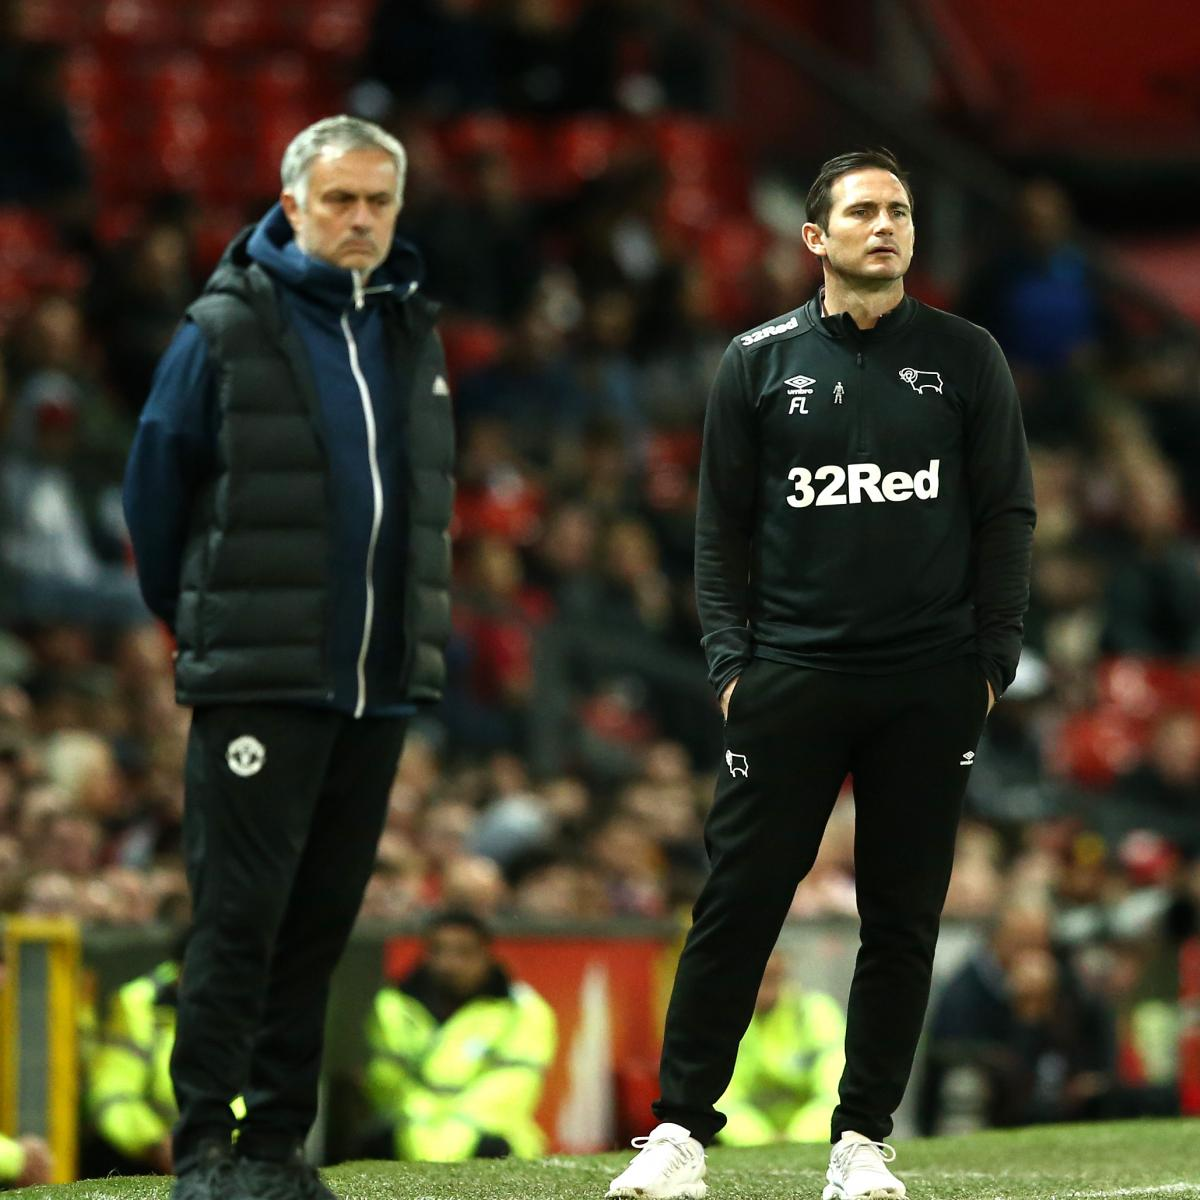 Frank Lampard: 'It Will Be Special' Facing Jose Mourinho ...